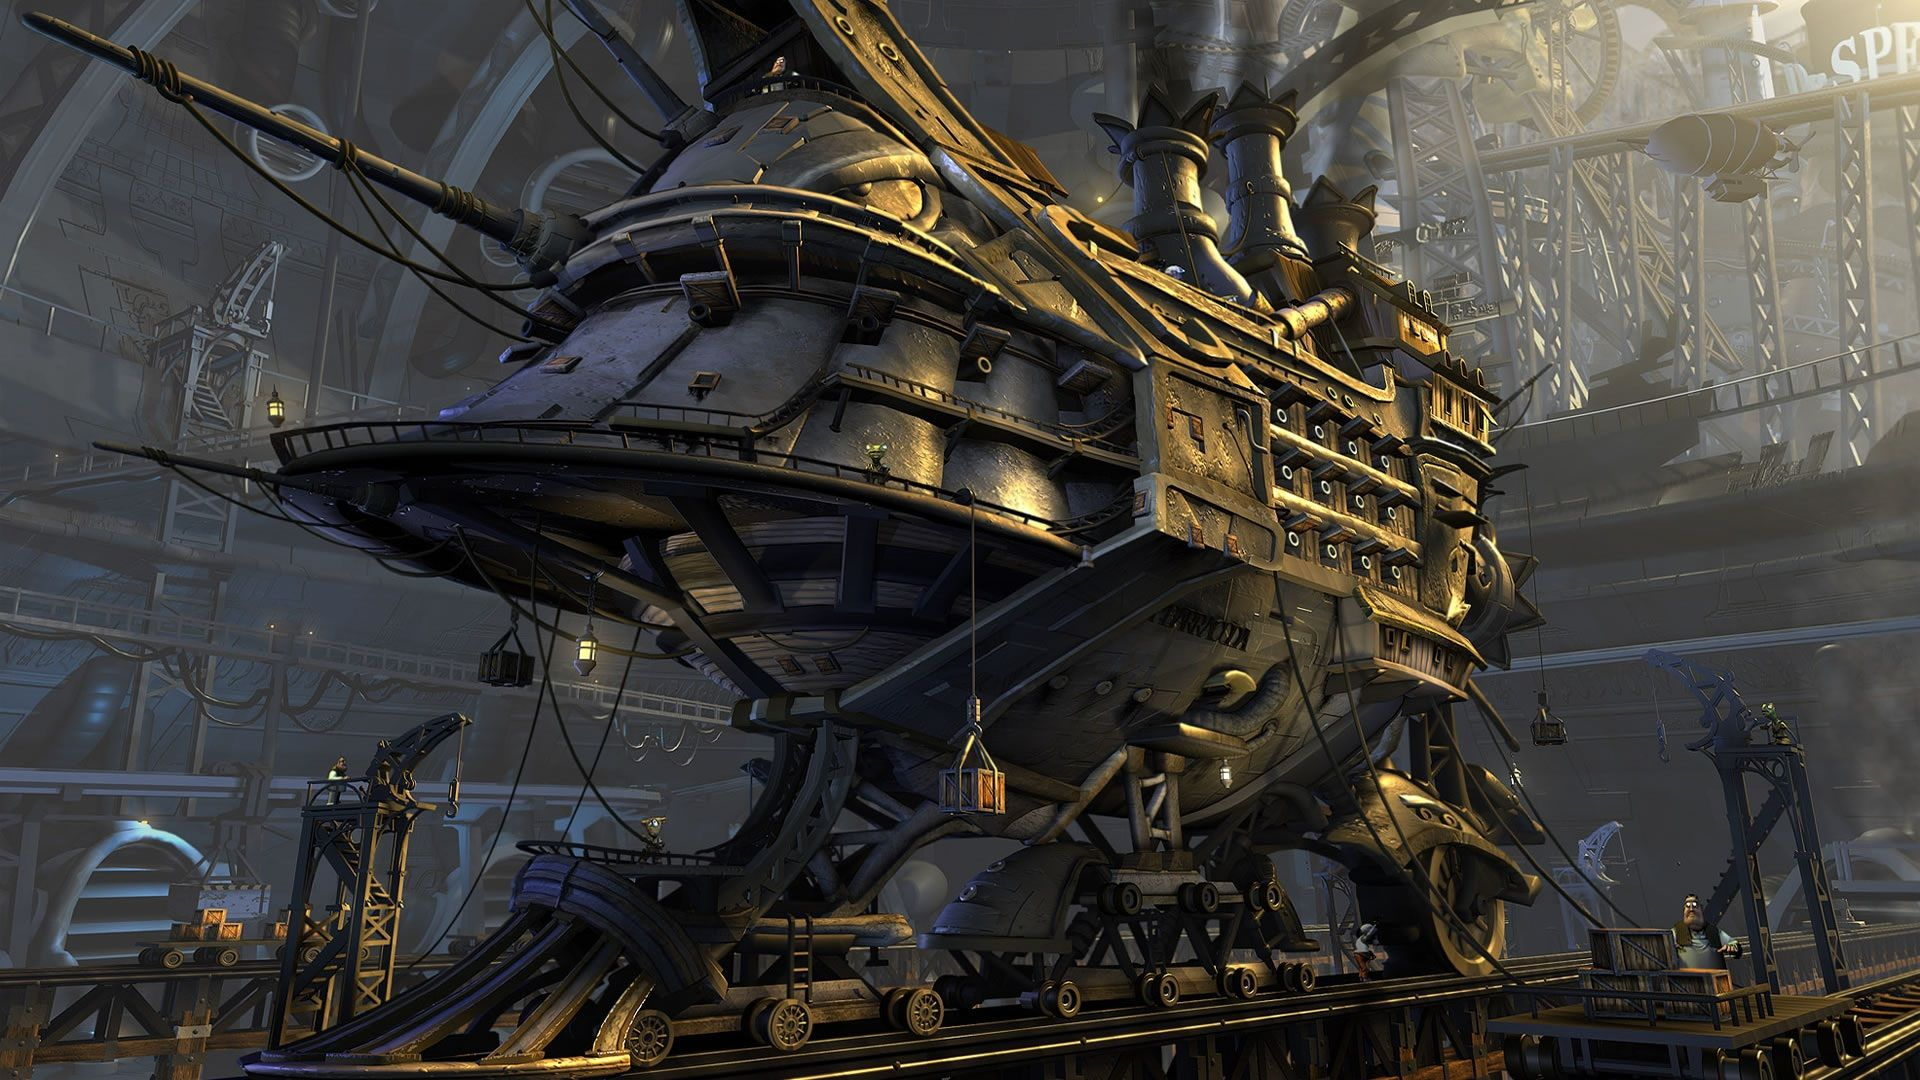 Steampunk wallpaper and themes